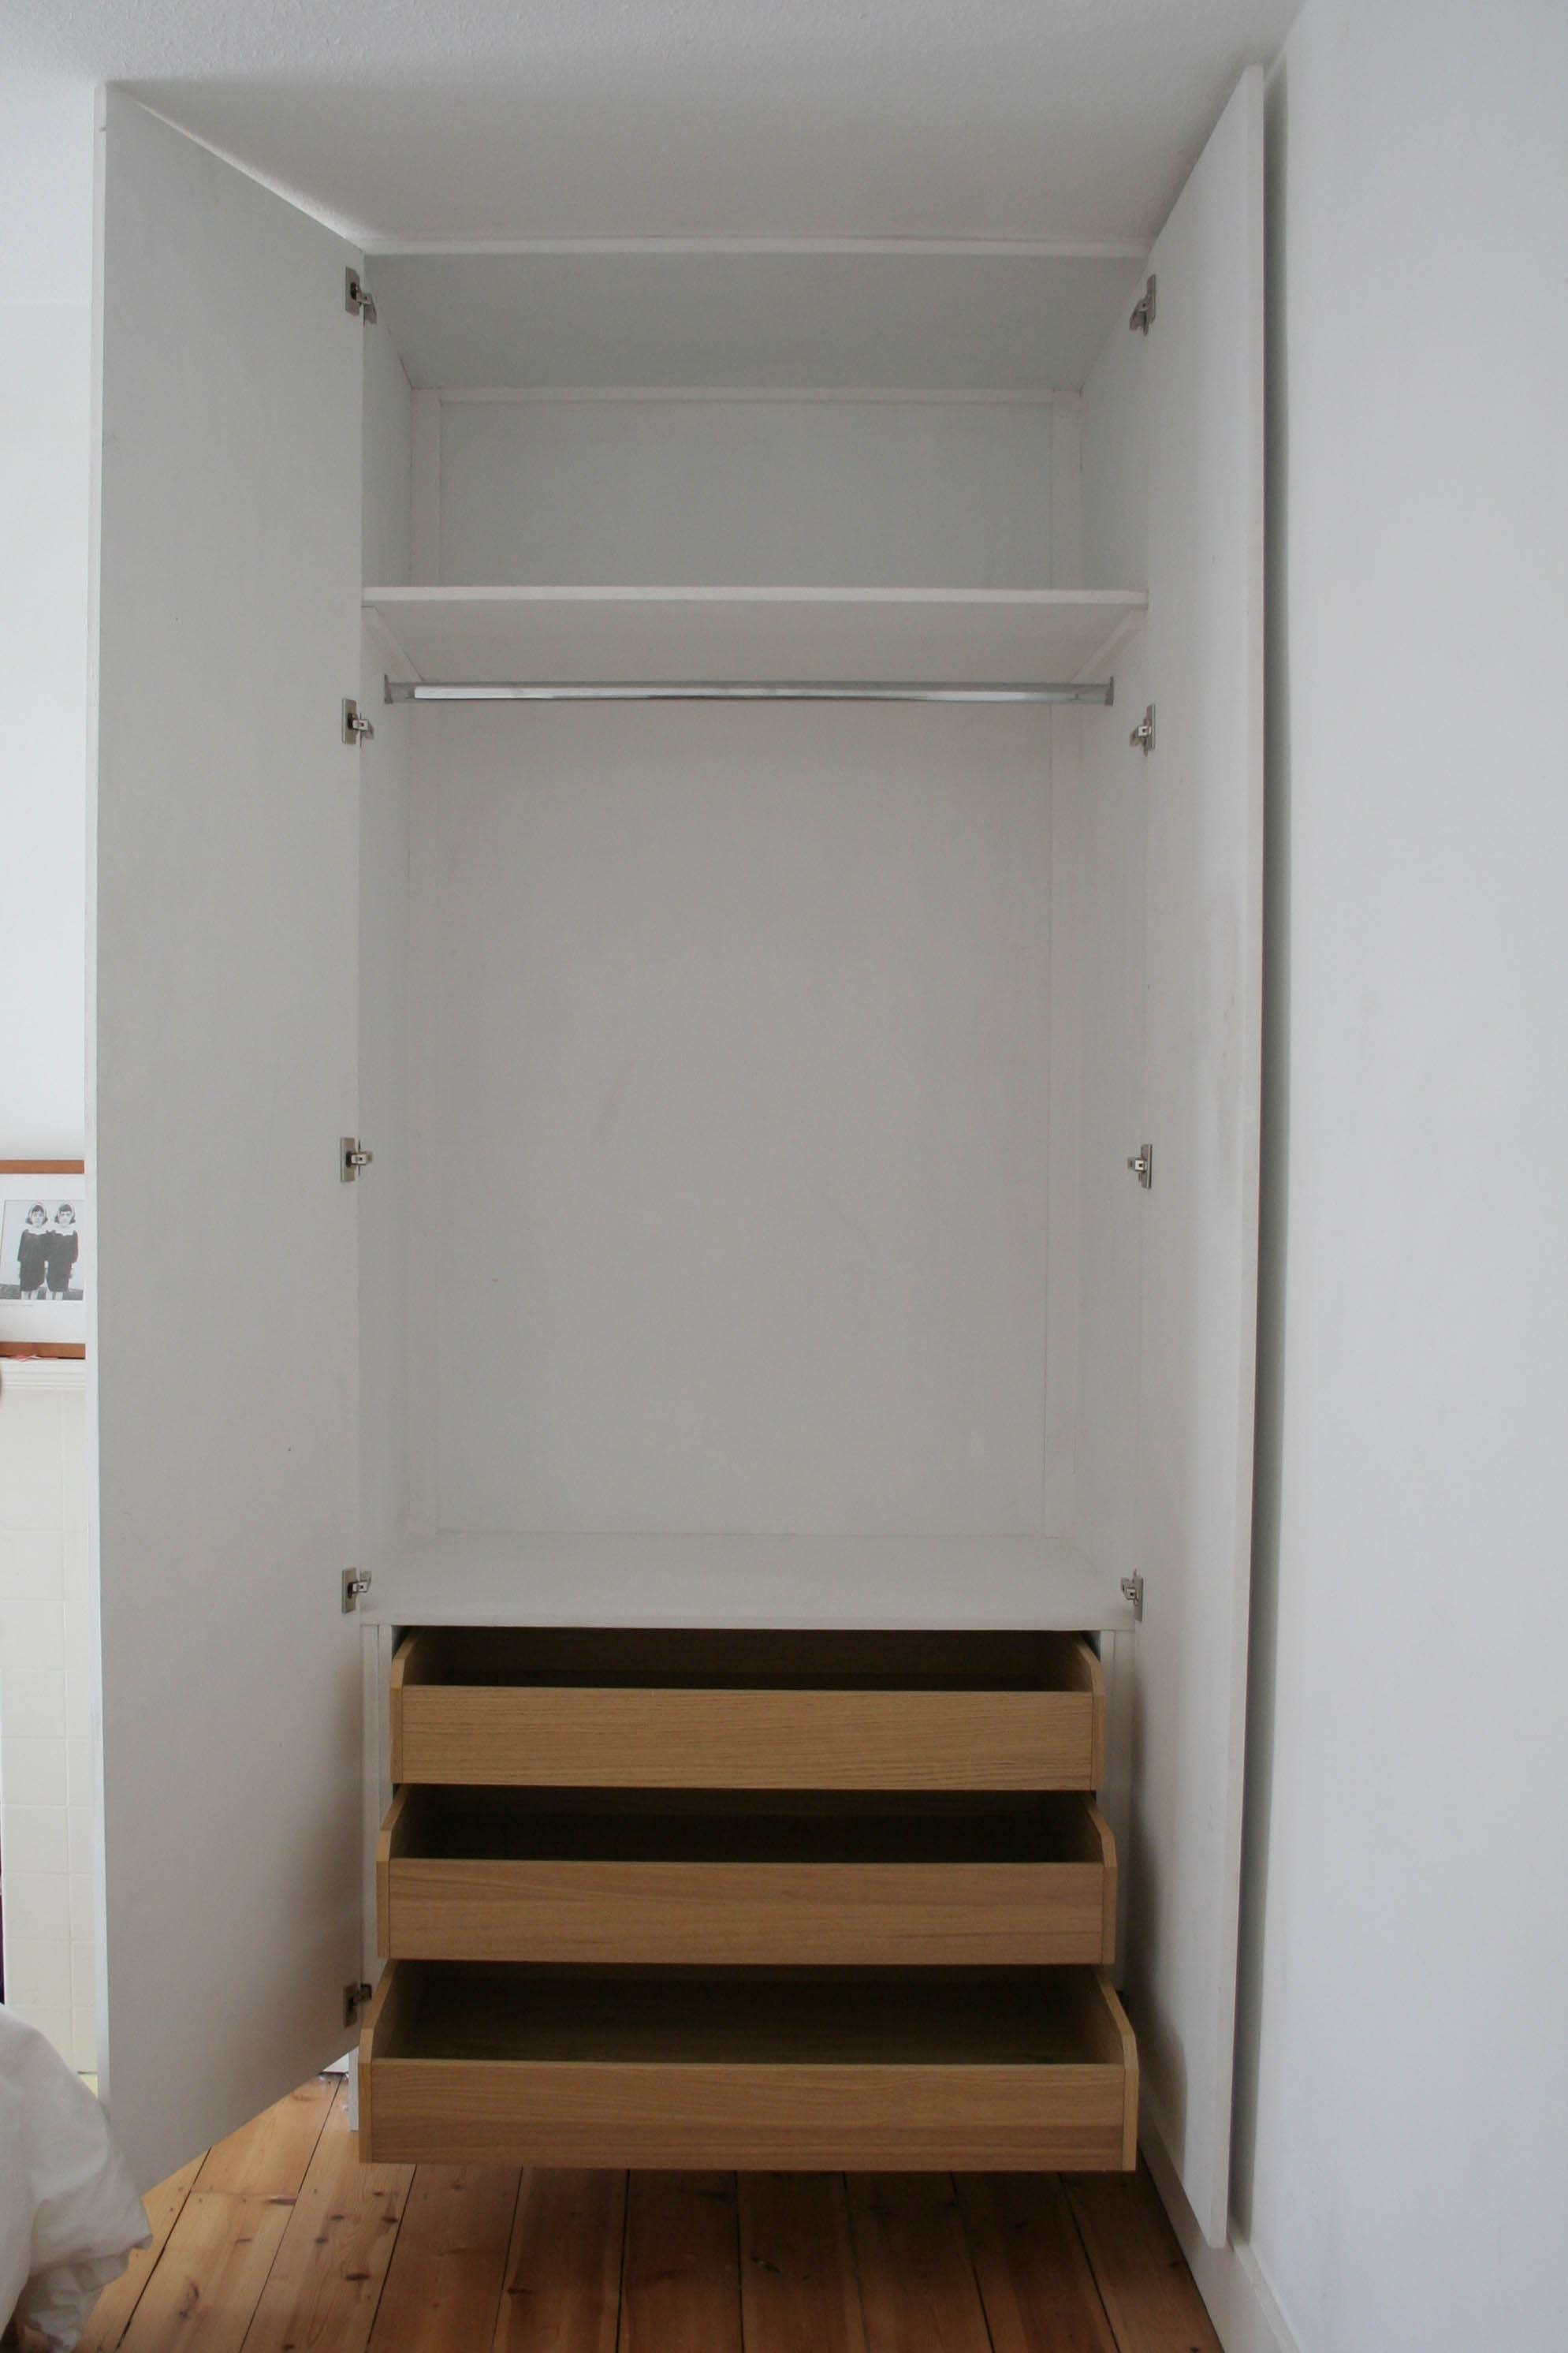 Furniture. Wonderful Wardrobe With Drawers Inside Give More Space throughout Double Wardrobe With Drawers And Shelves (Image 16 of 30)